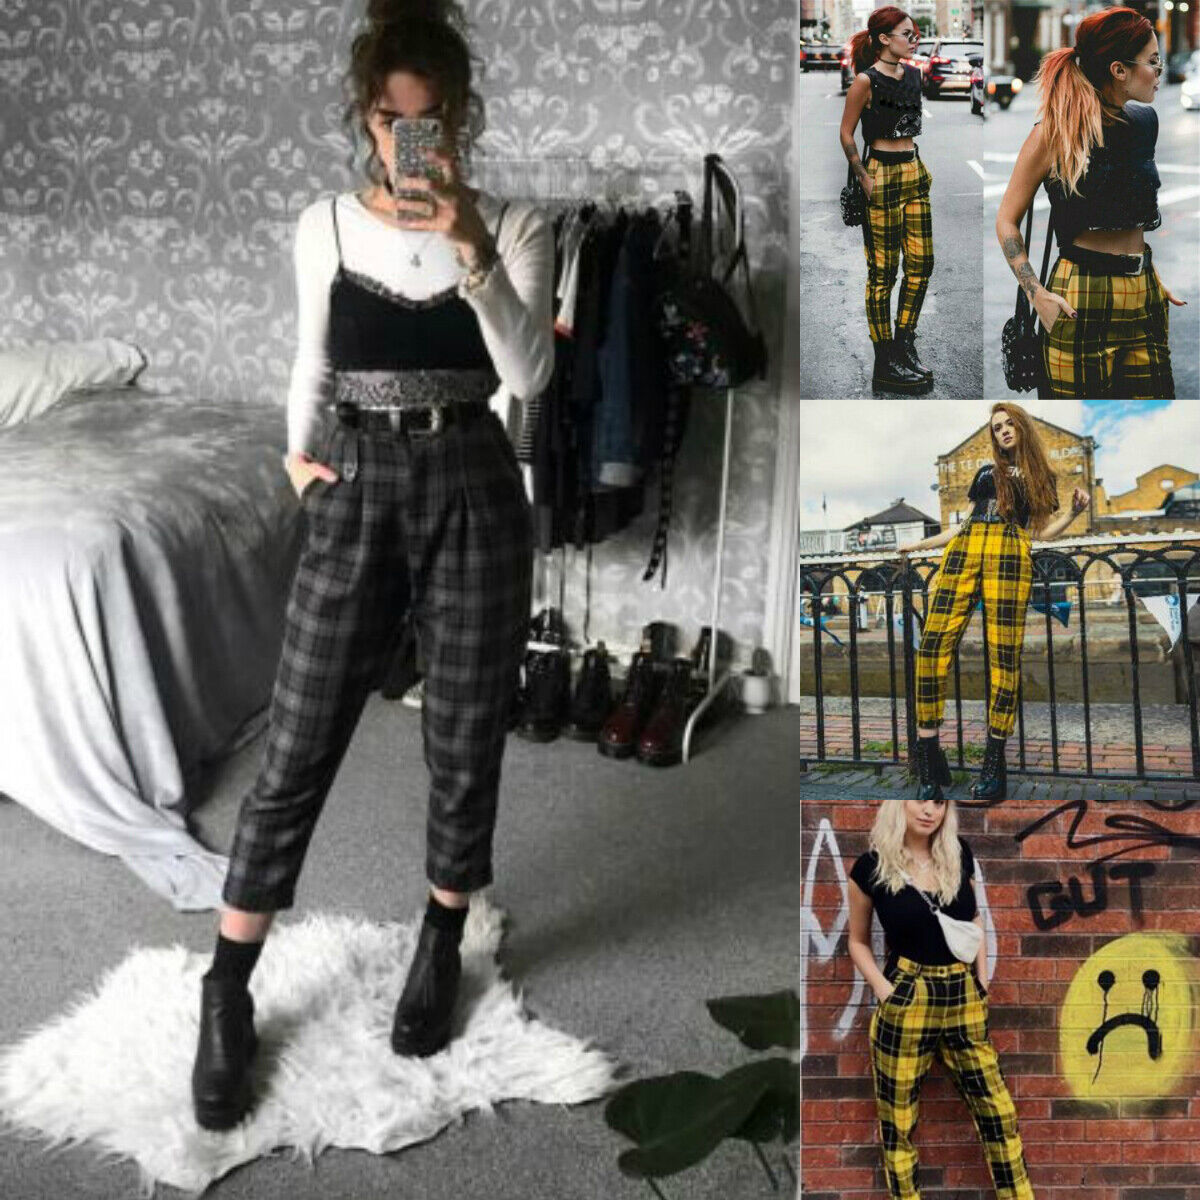 Summer Women Plaid Pants Streetwear Trousers Harem Joggers F